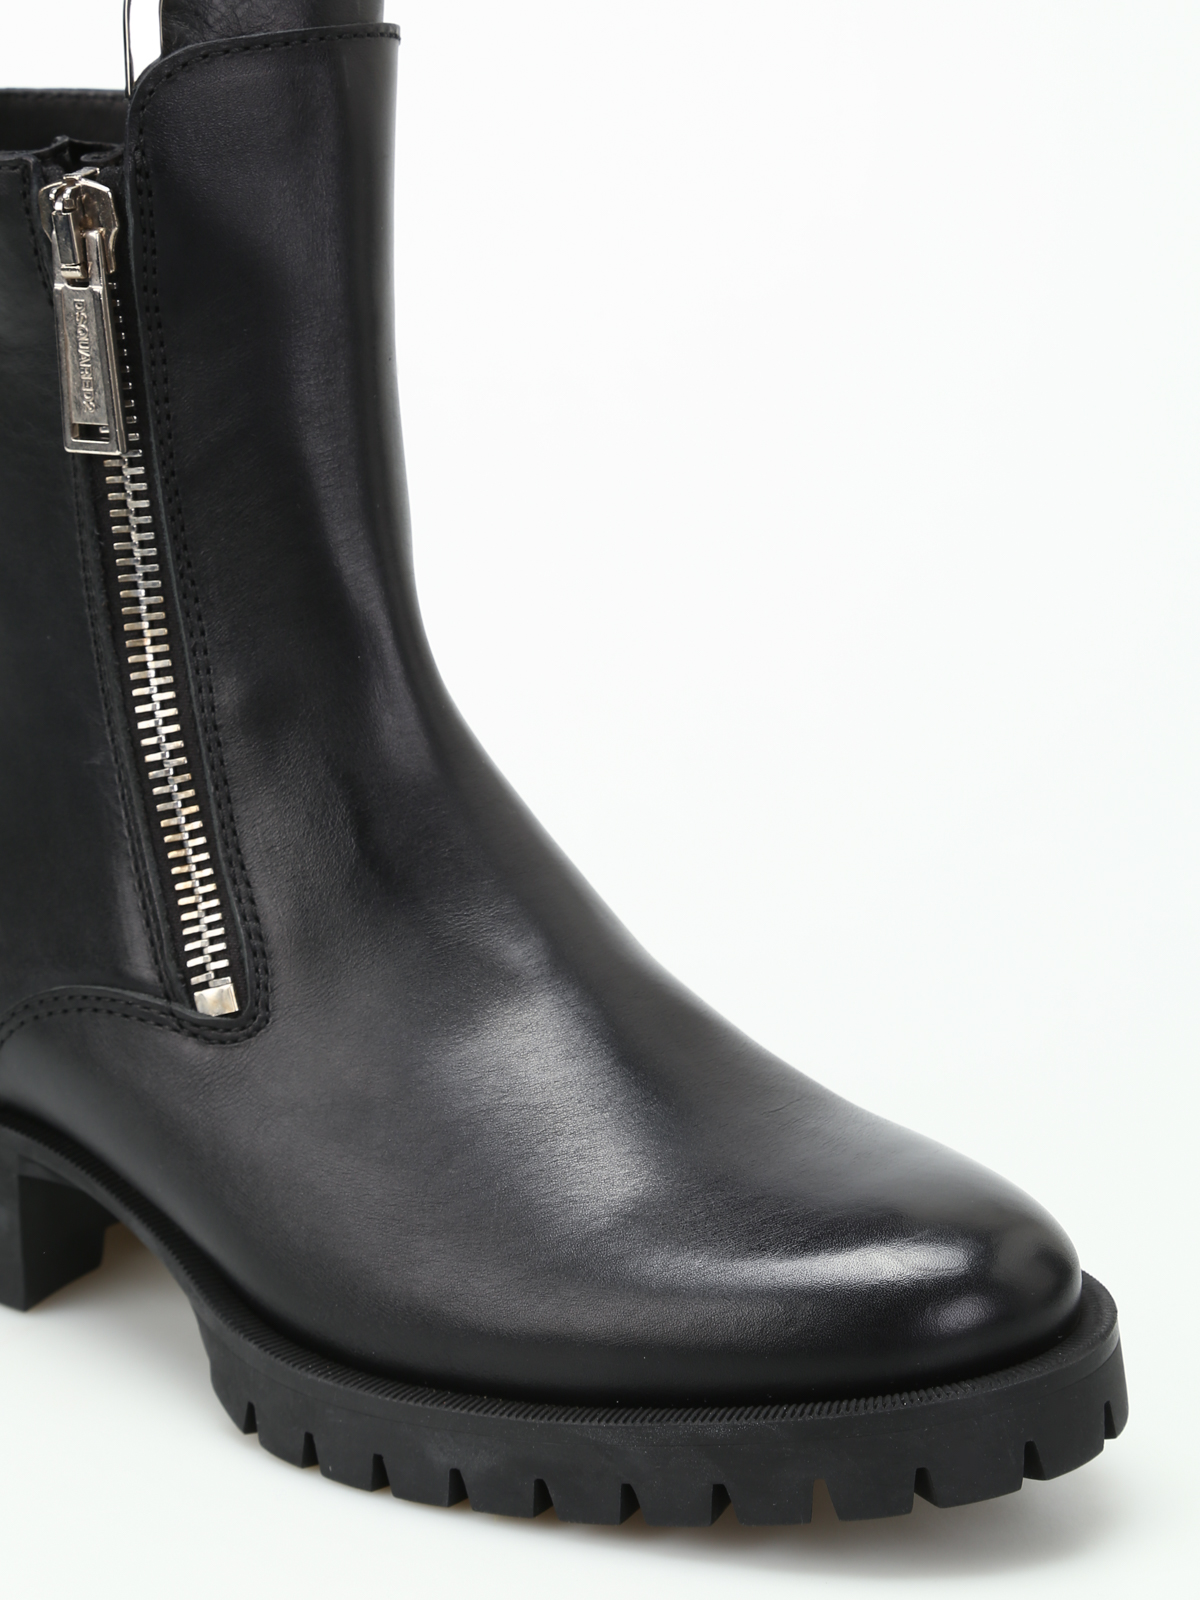 d0b2dc2f5d5821 Dsquared2 - Zip up black leather boots - ankle boots - W17BO101 015 2124